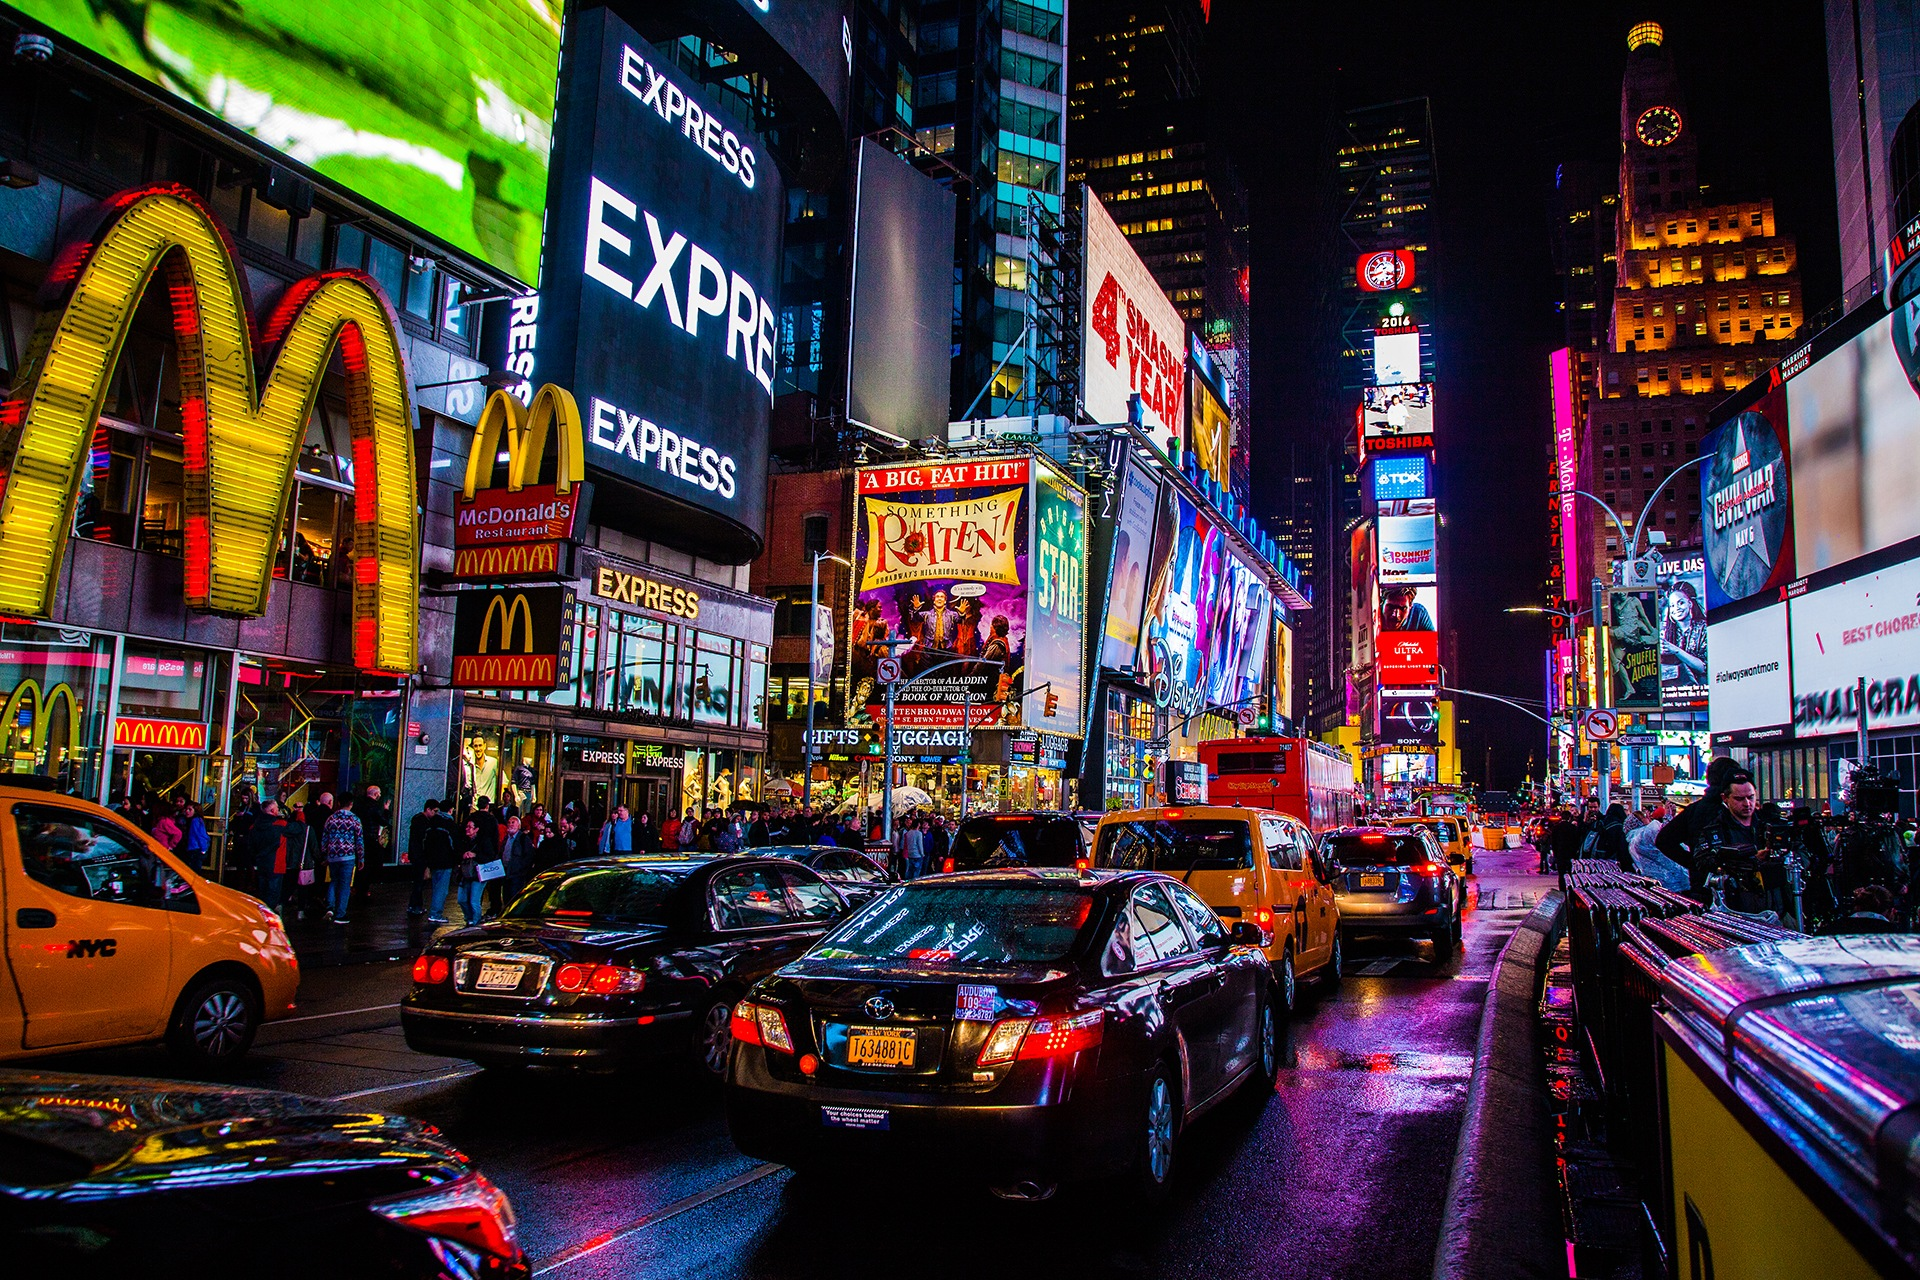 Street of New York by ck khui